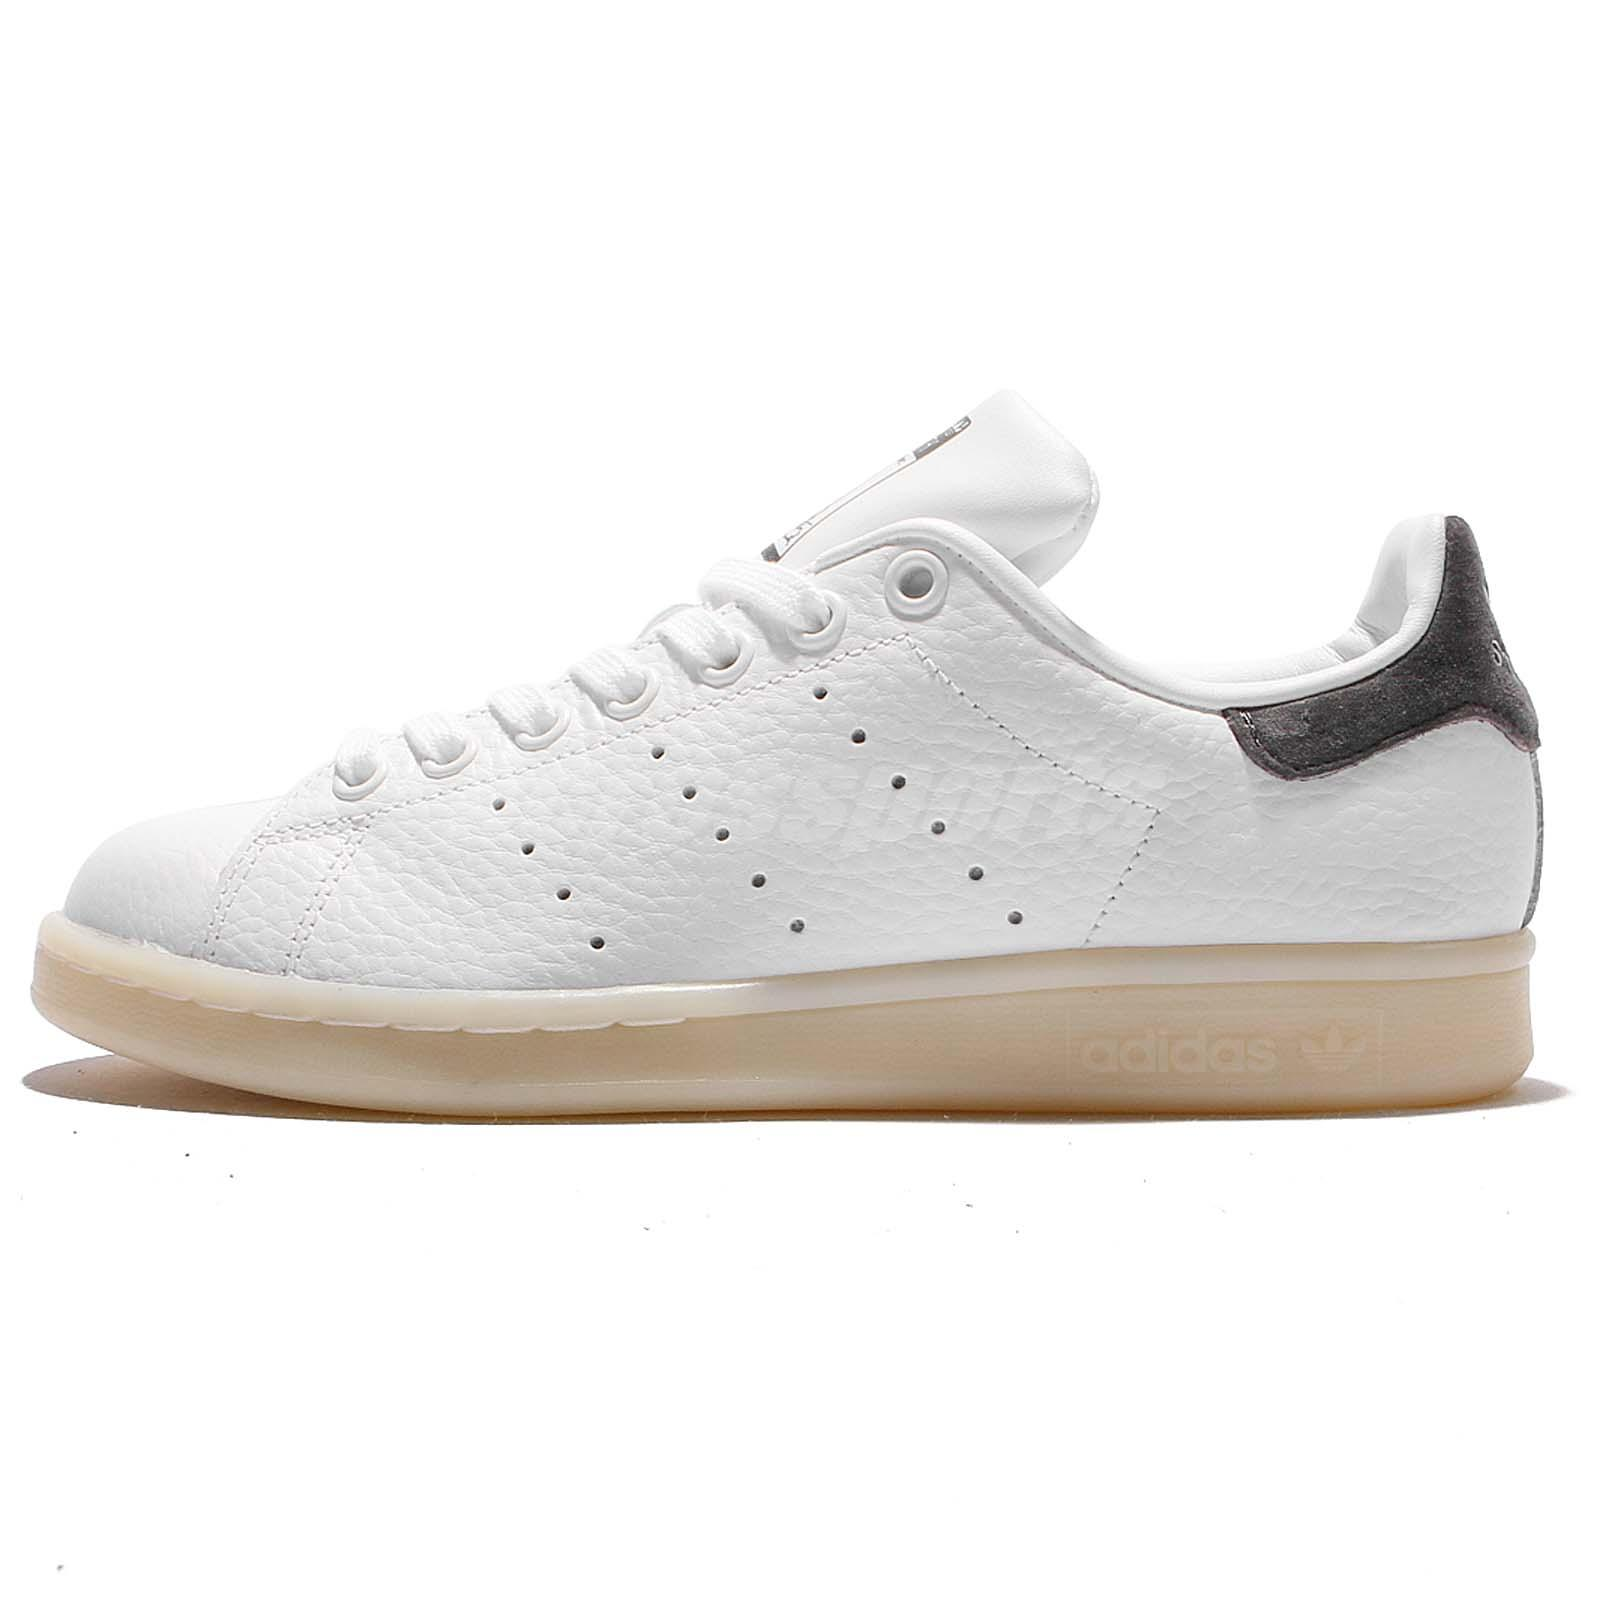 adidas originals stan smith leather white black men classic shoes sneaker s82255. Black Bedroom Furniture Sets. Home Design Ideas